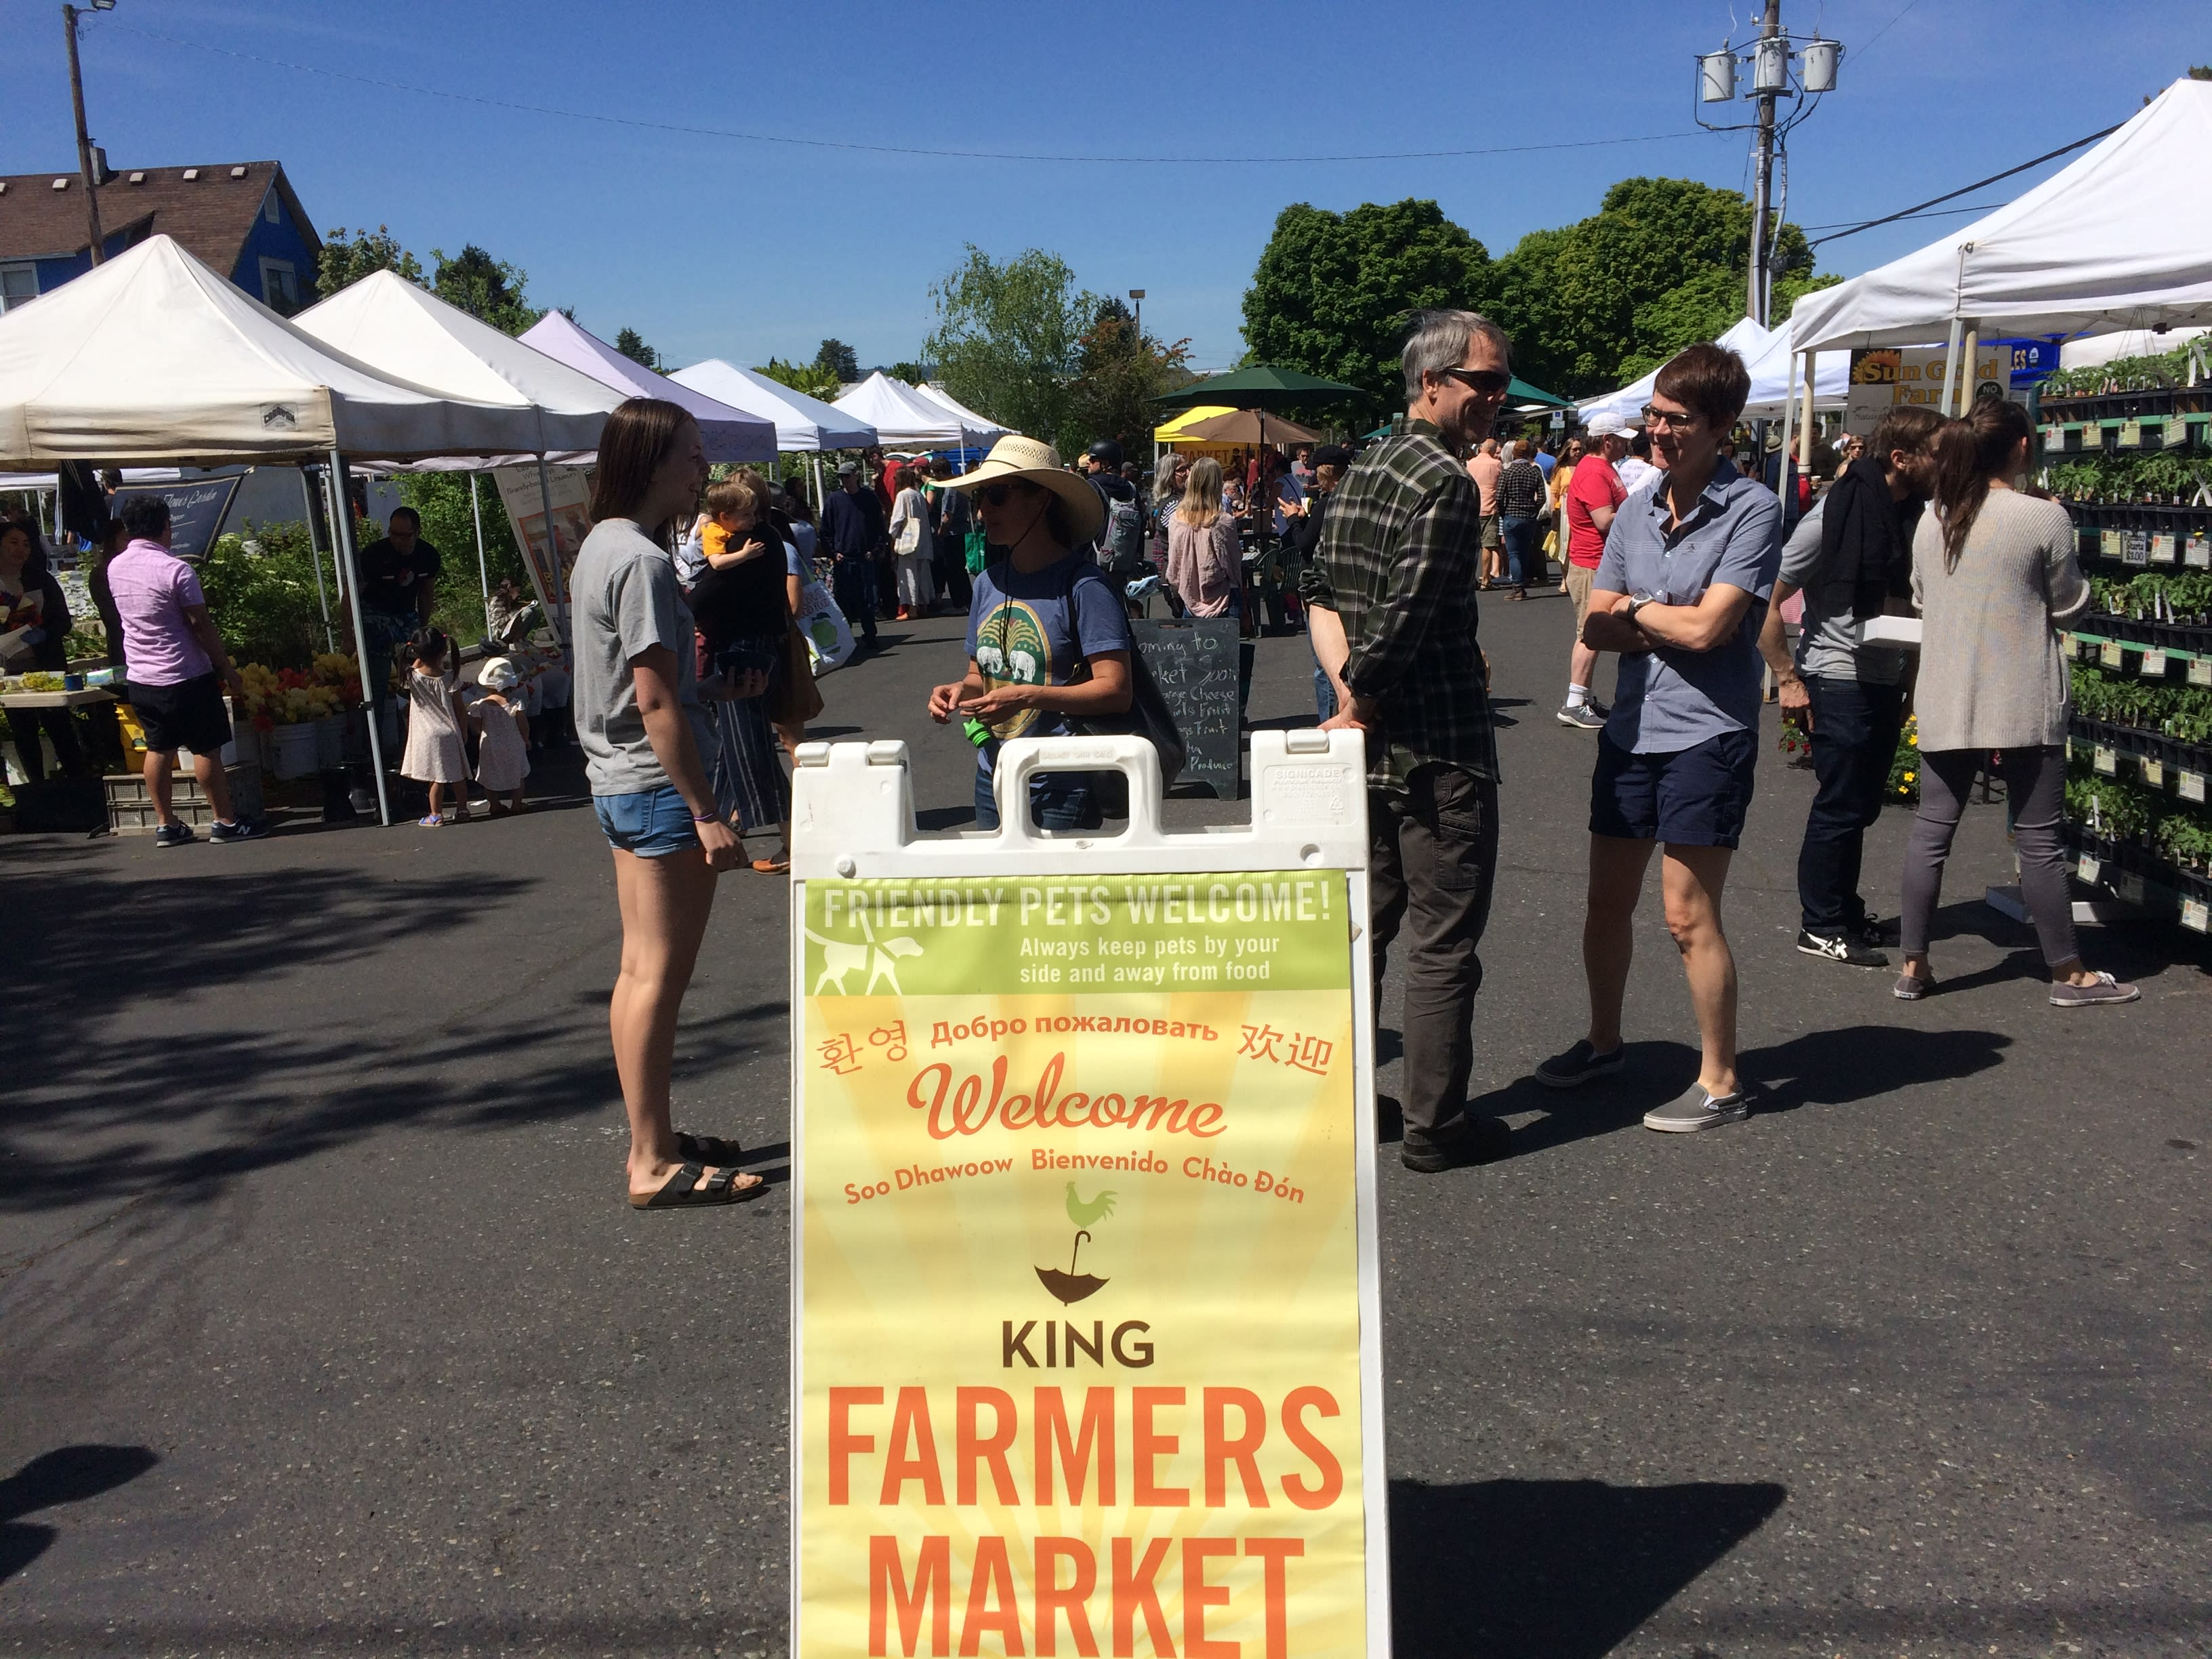 King Farmers Market